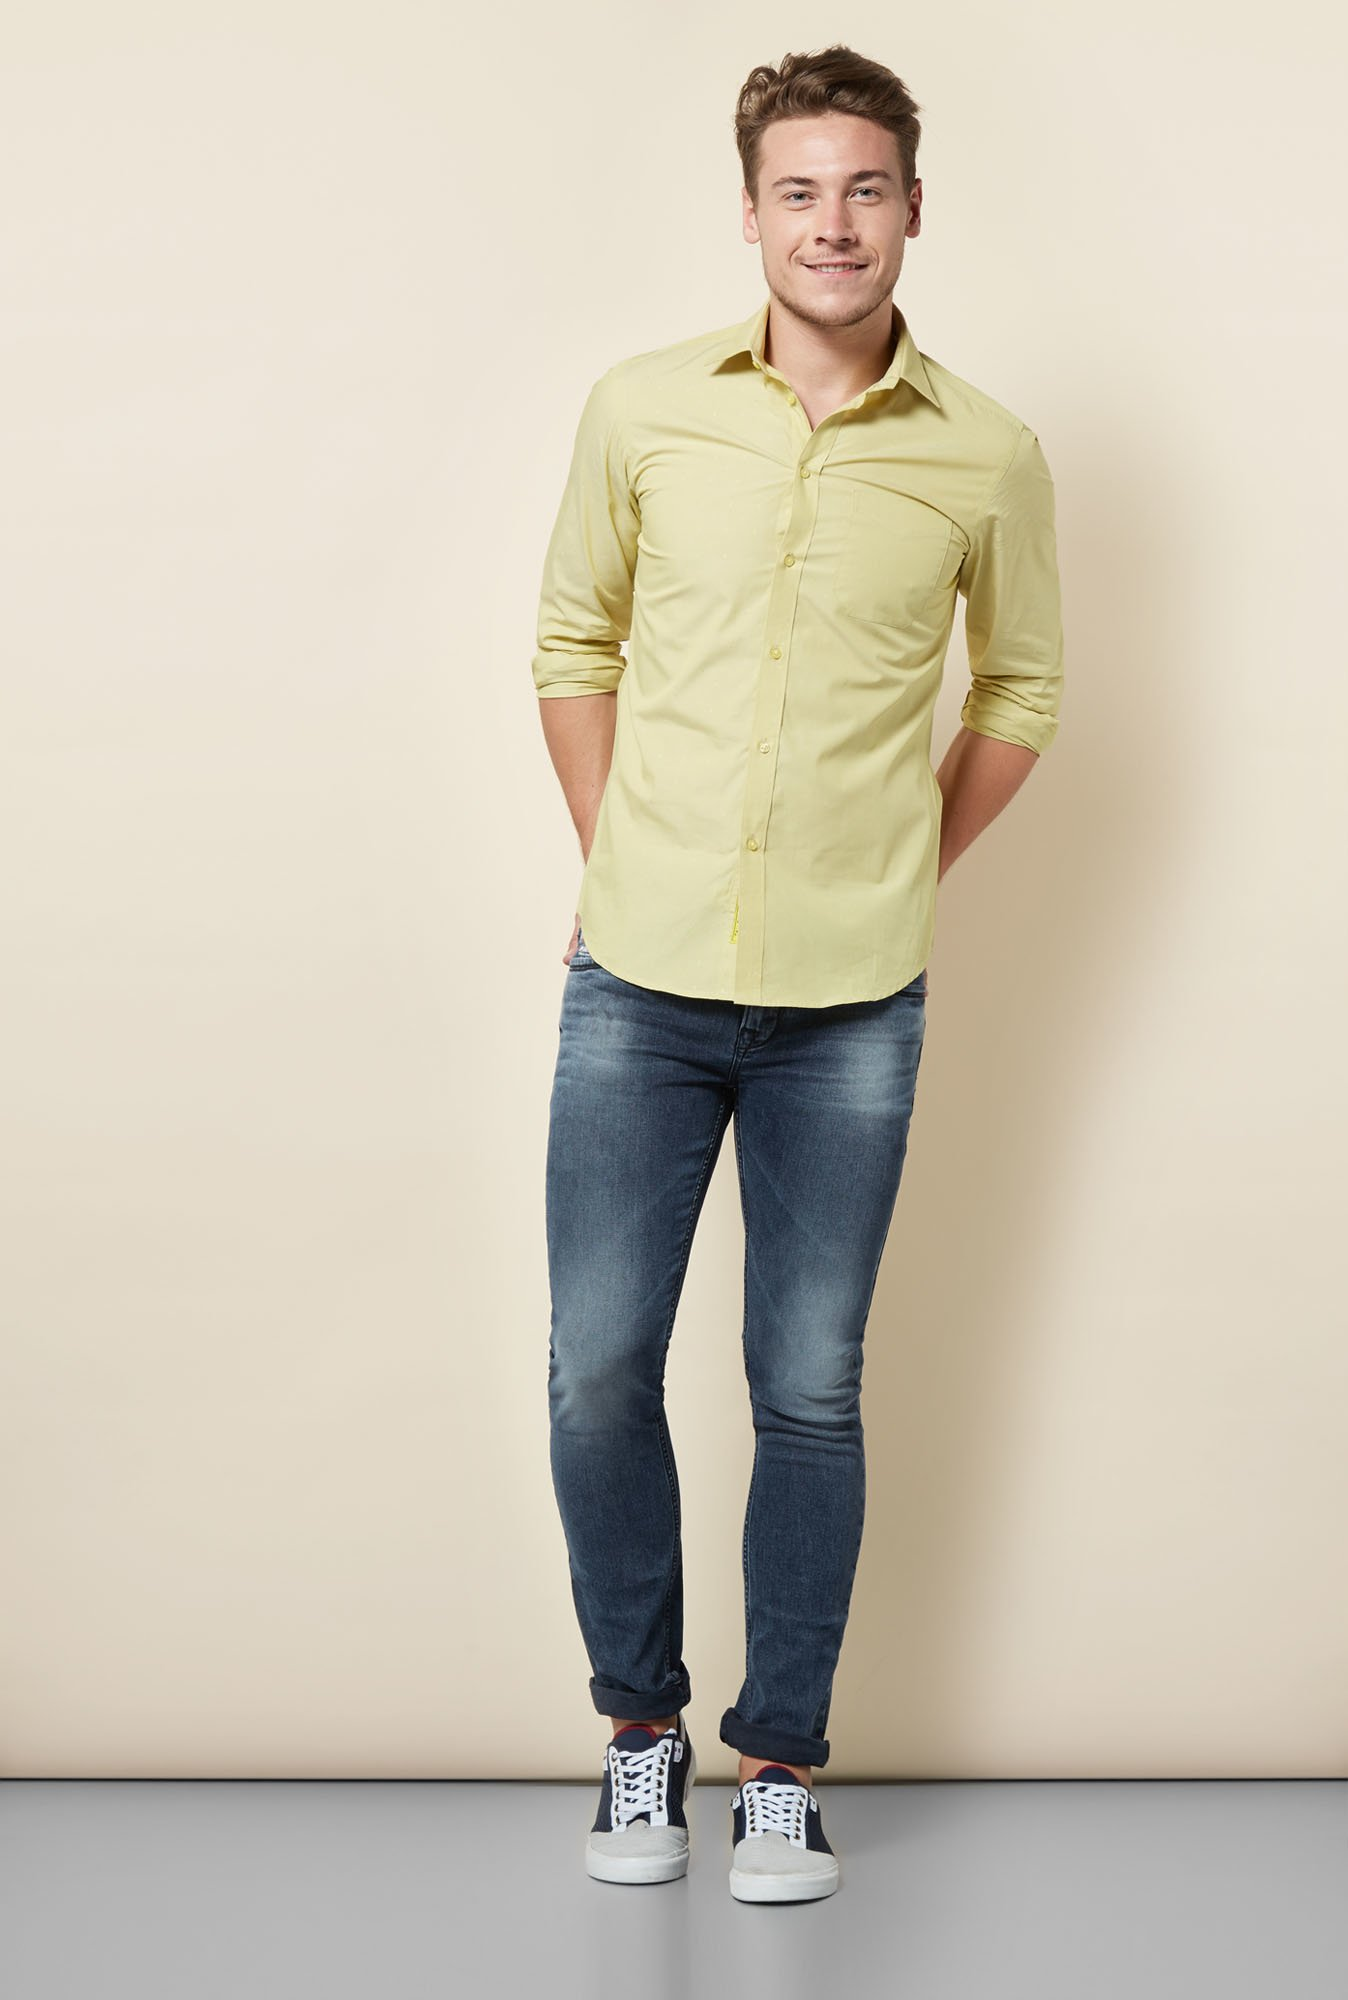 Integriti Yellow Solid Cotton Shirt